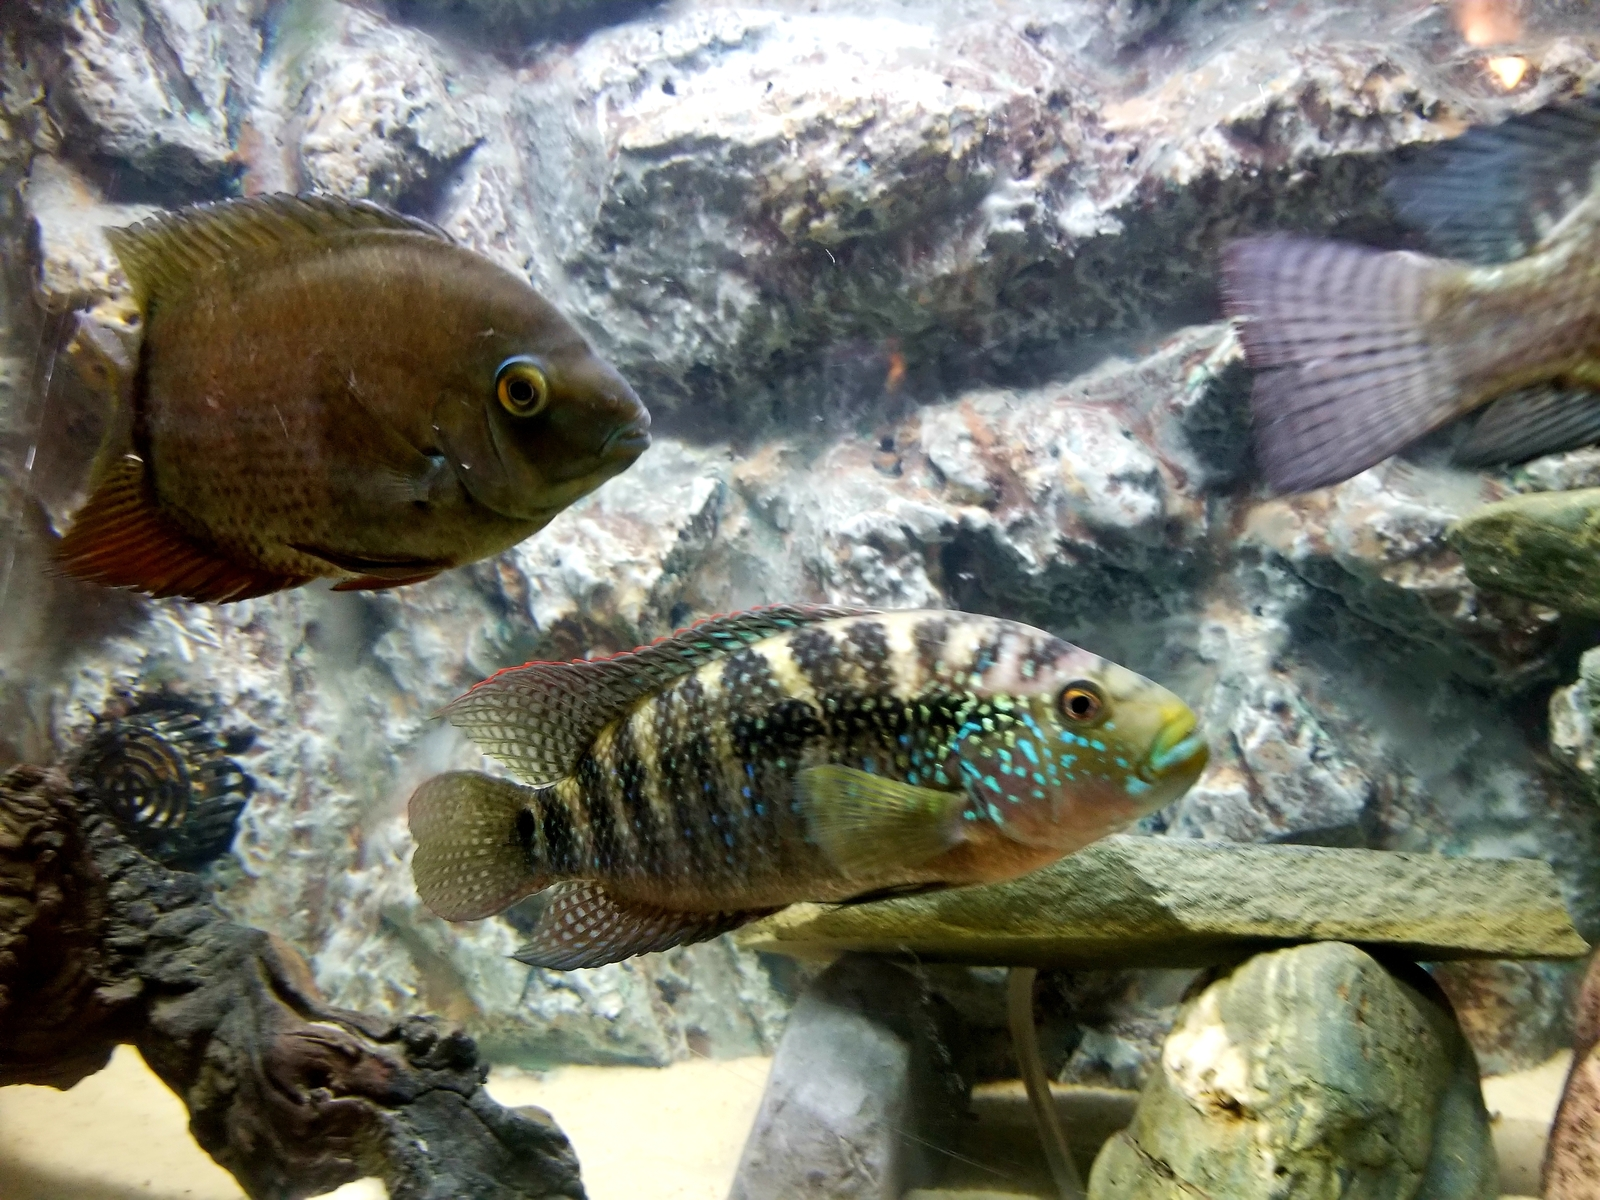 green severum and jack dempsey | by Dan Burkett